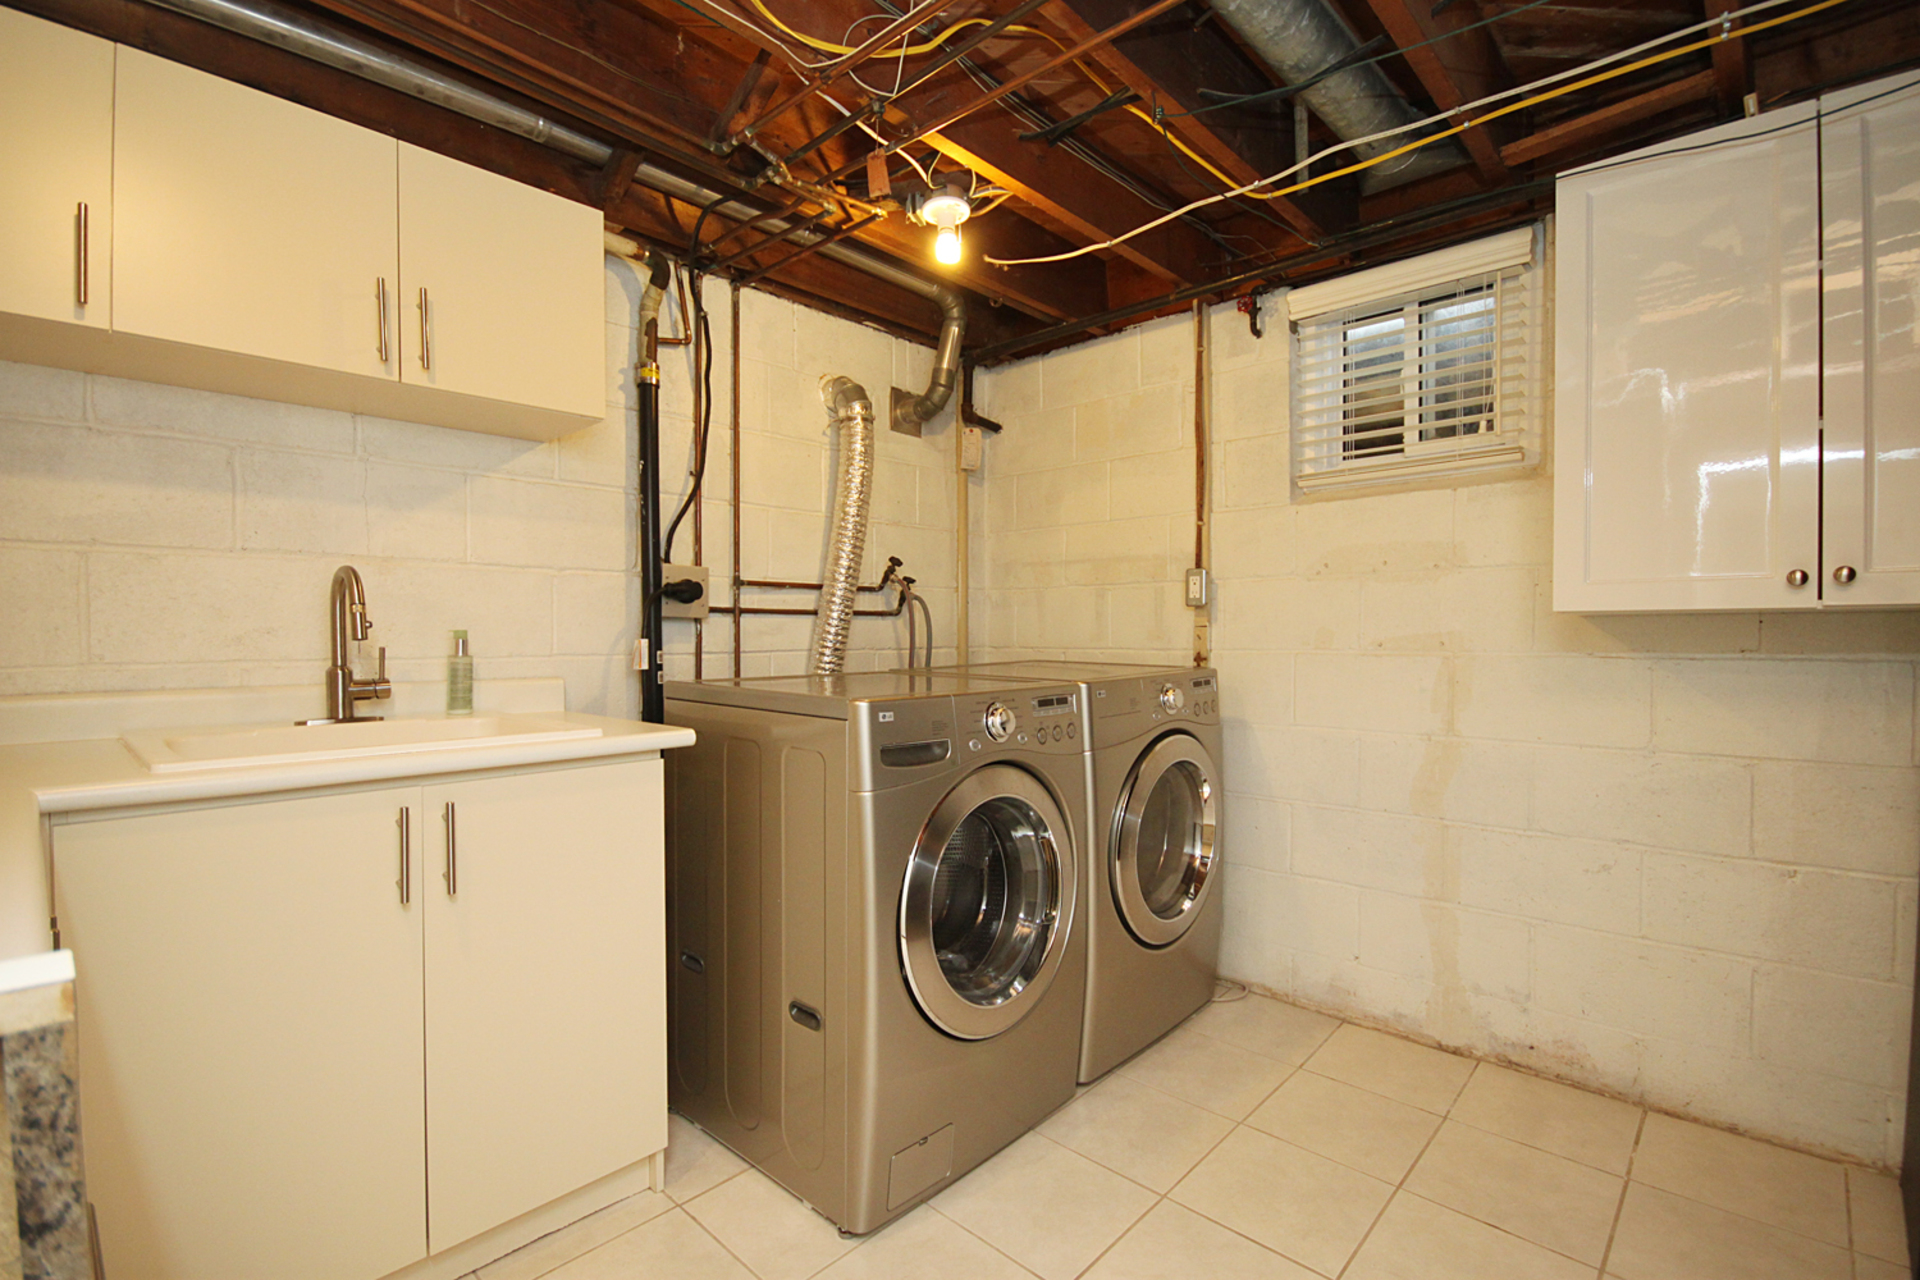 Laundry Room at 5 Minorca Place, Parkwoods-Donalda, Toronto